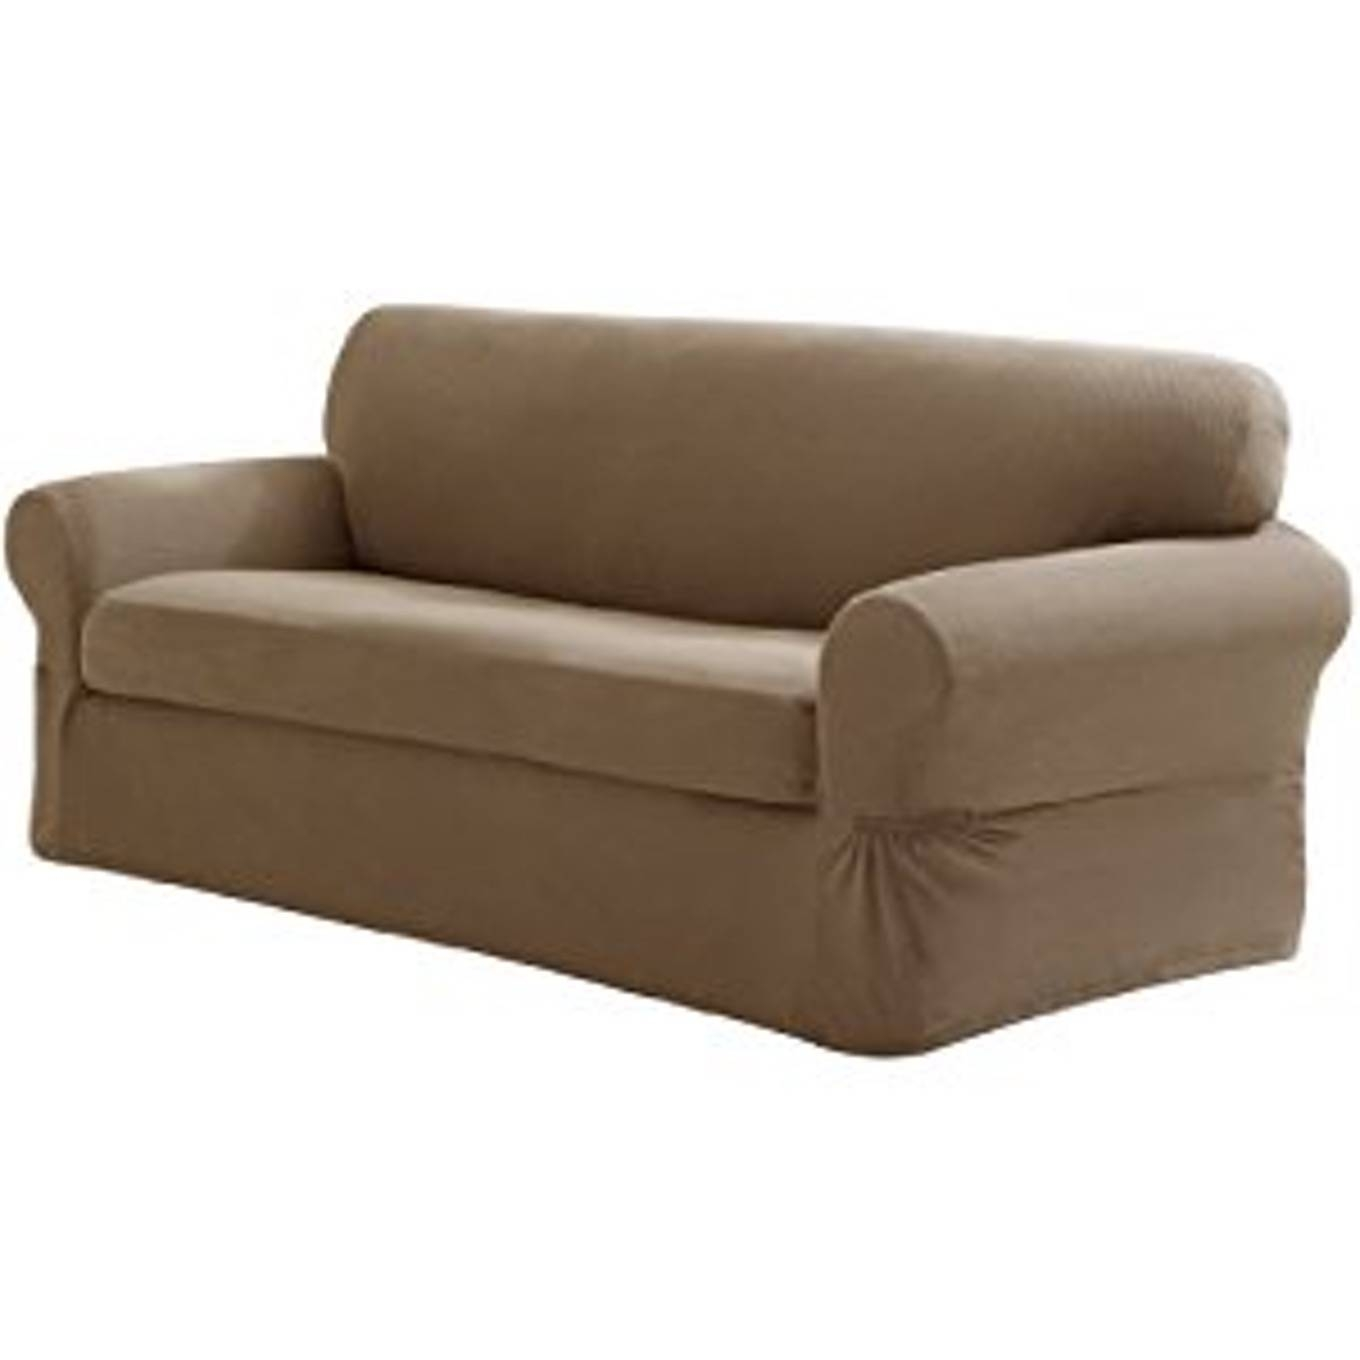 Sofas Center : Ton Sofa Covers Discountt Extra Large Slipcovers in Clearance Sofa Covers (Image 24 of 30)